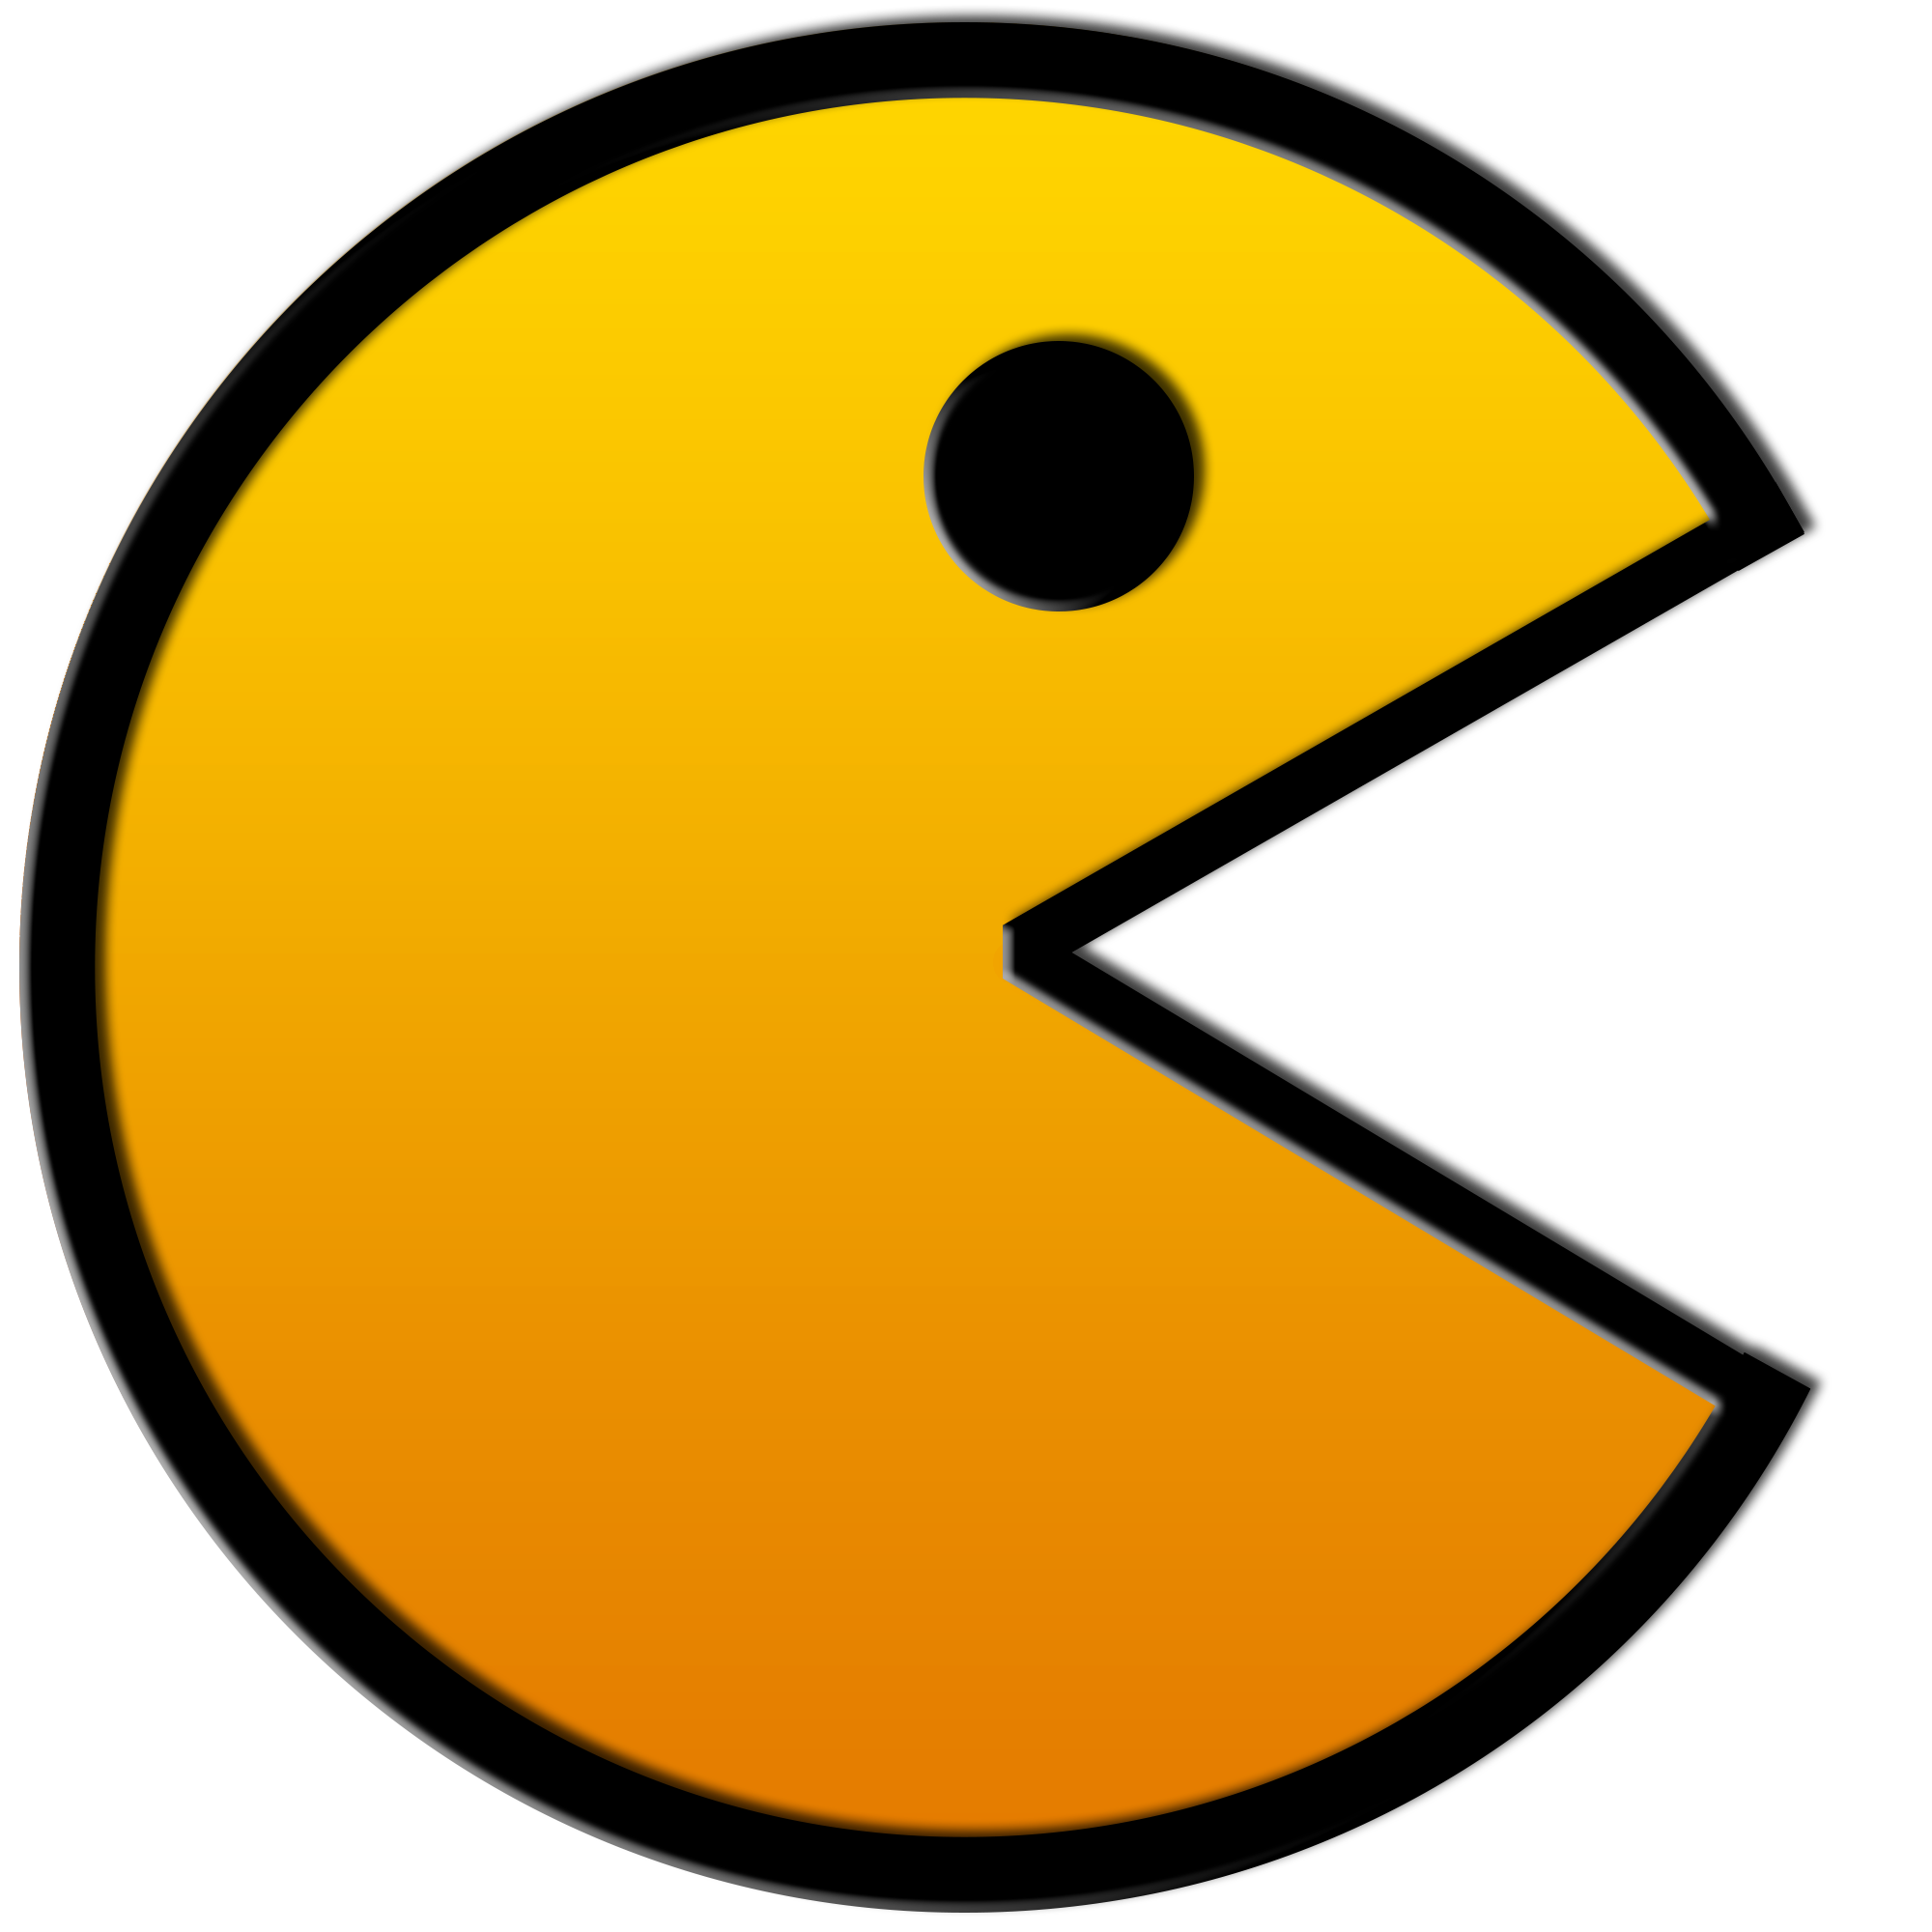 Pacman gif png. File hd wikimedia commons